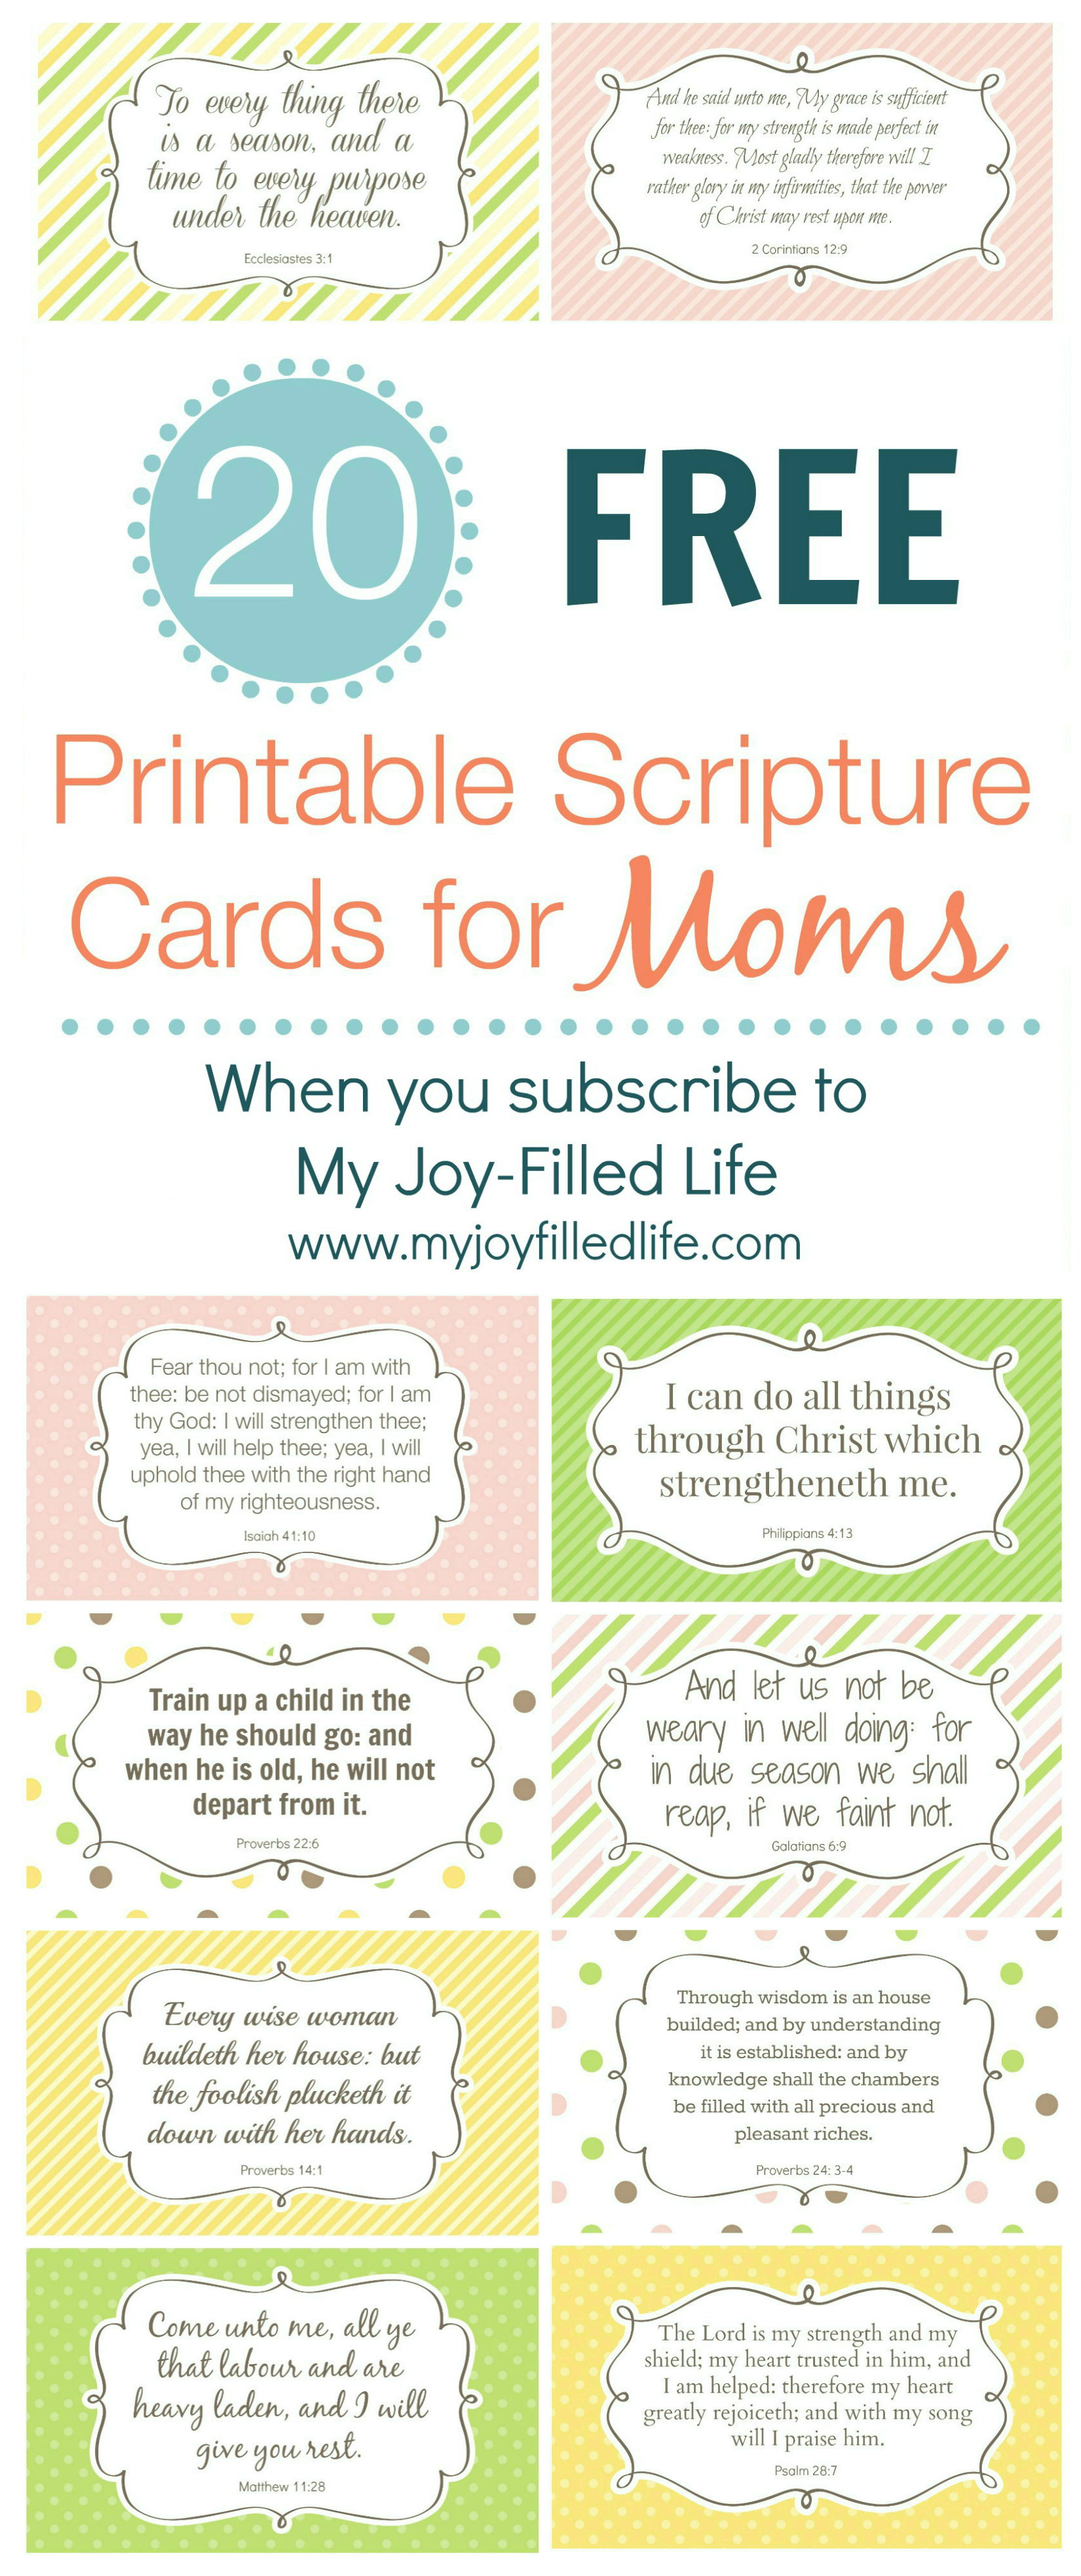 Encouragement for Moms - FREE Printable Scripture Cards - My Joy-Filled Life - Free PNG Encouragement